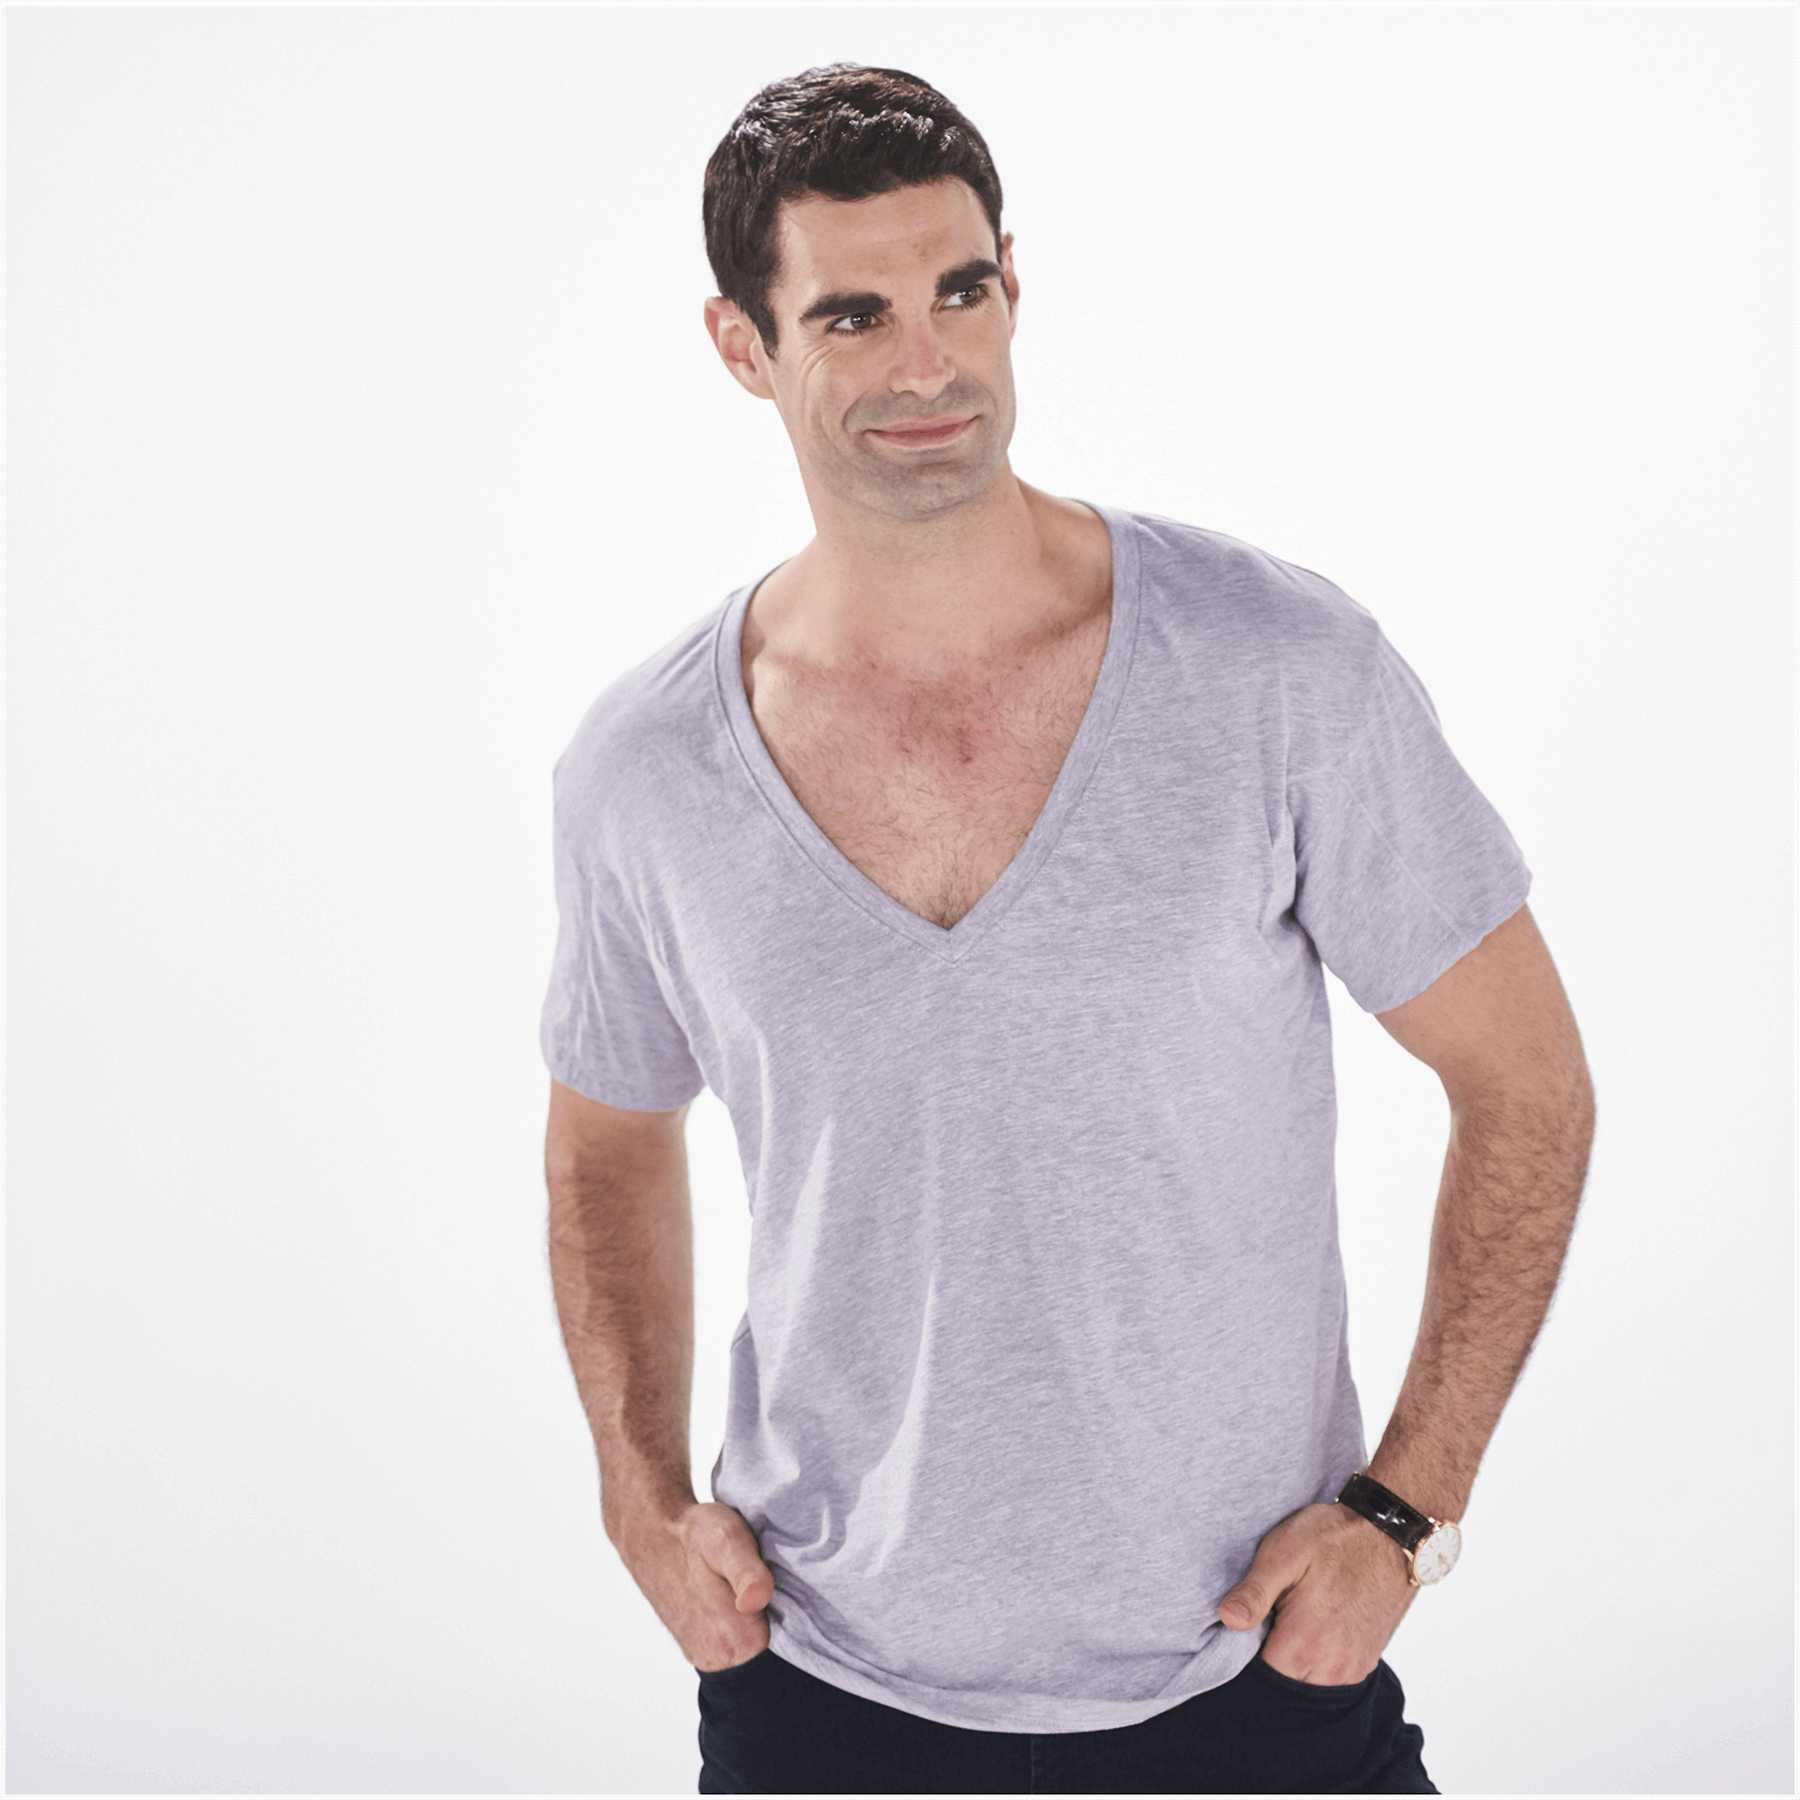 White T Shirt Under V Neck Sweater